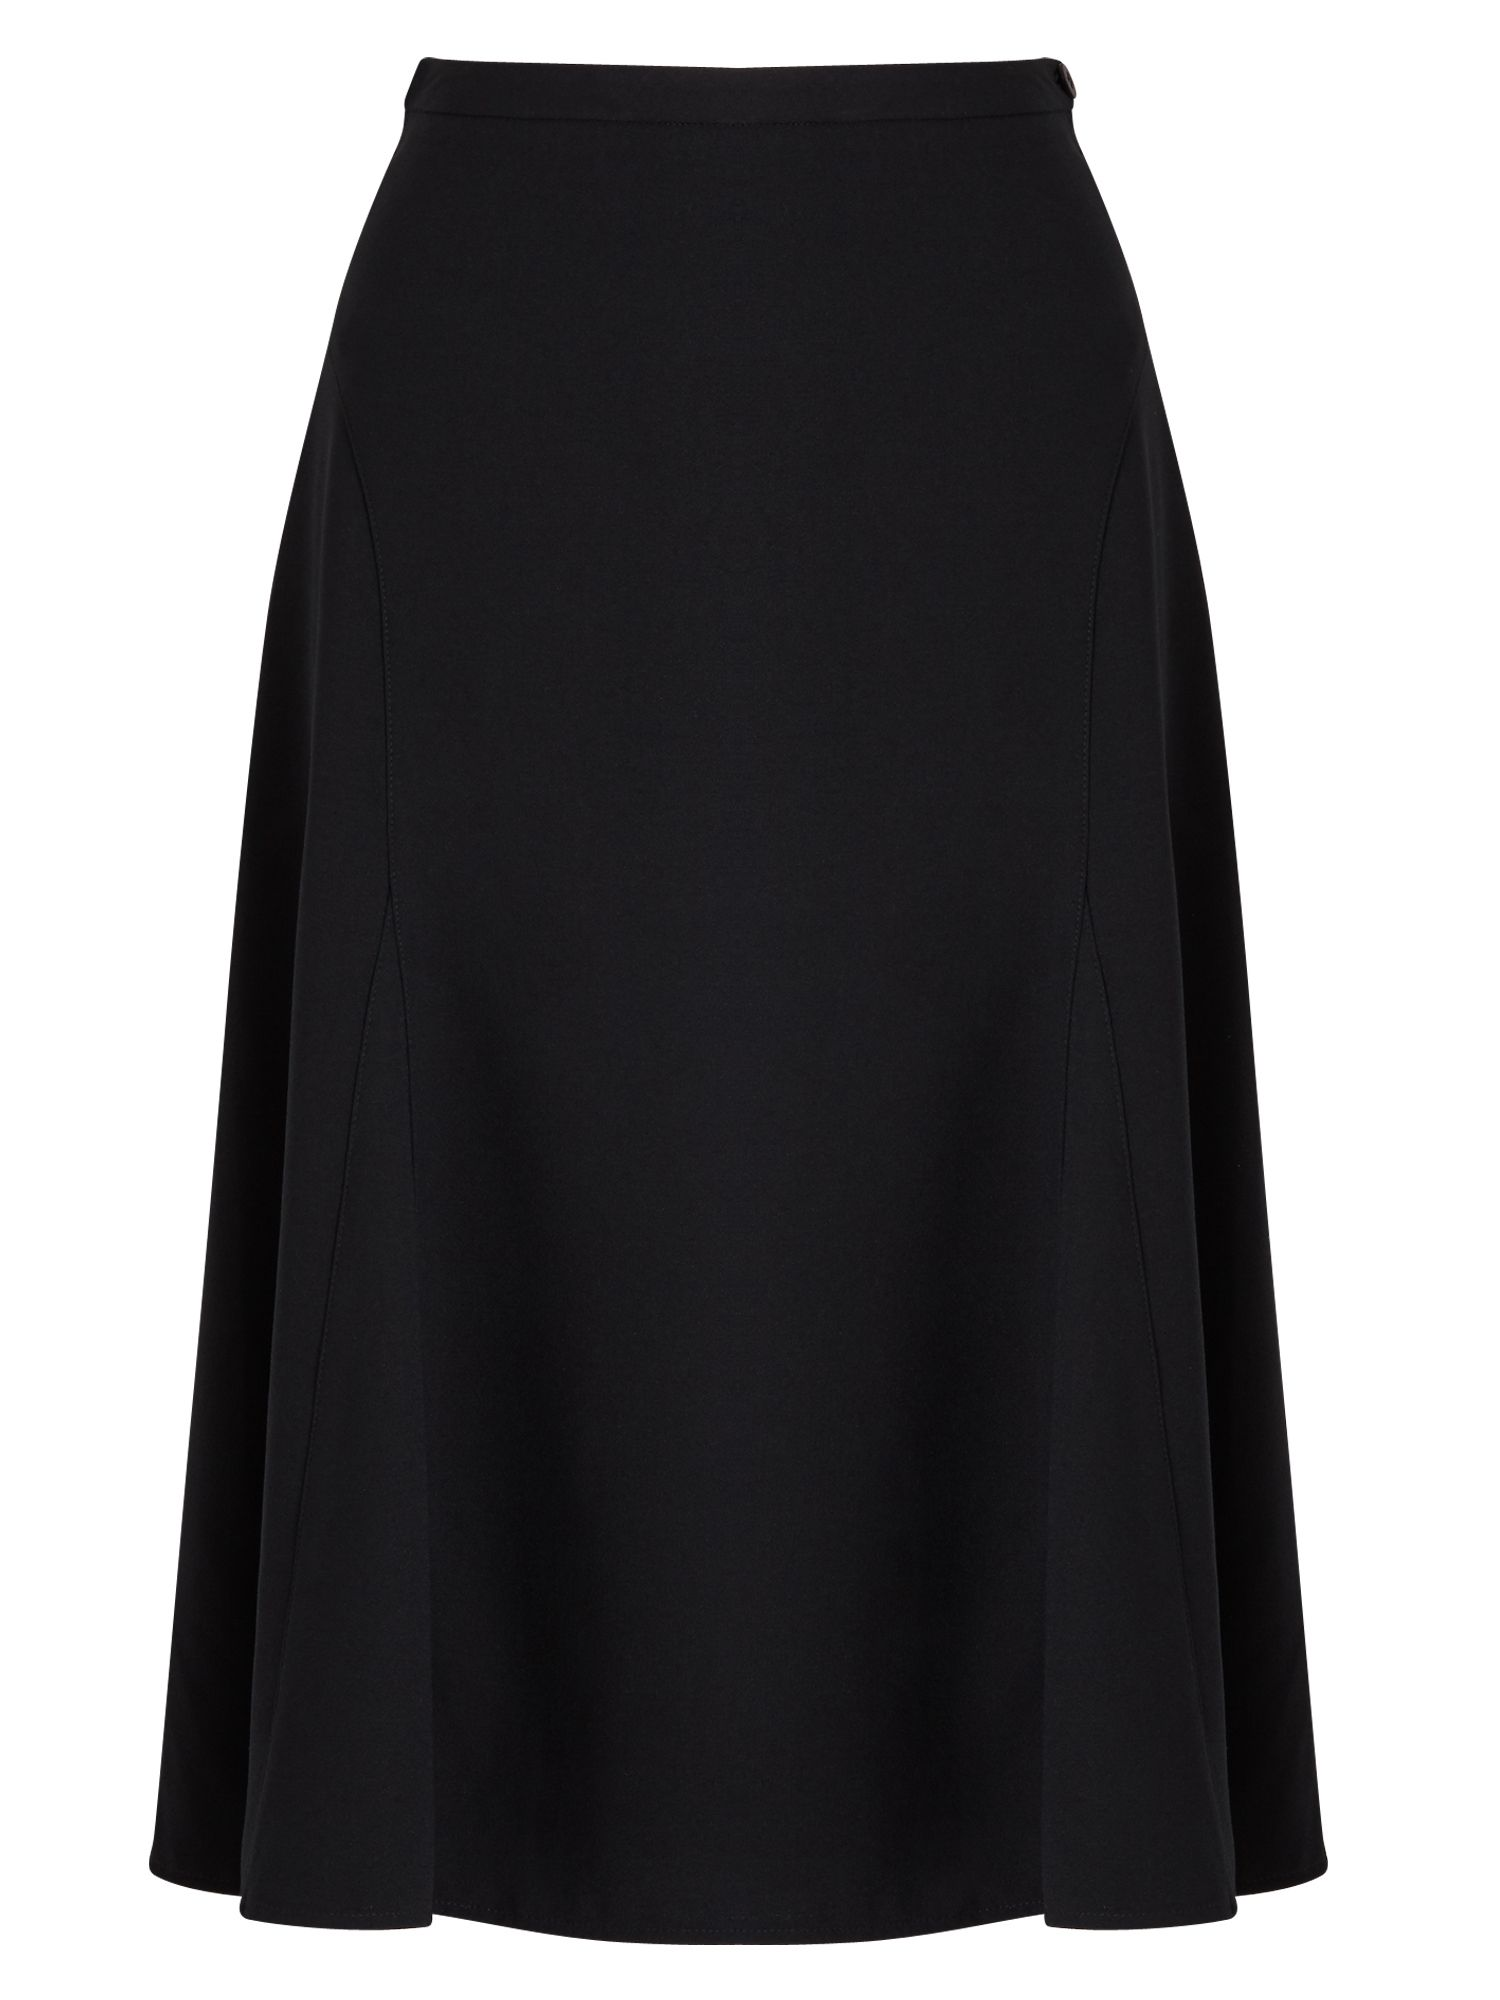 East Crepe Skirt, Black